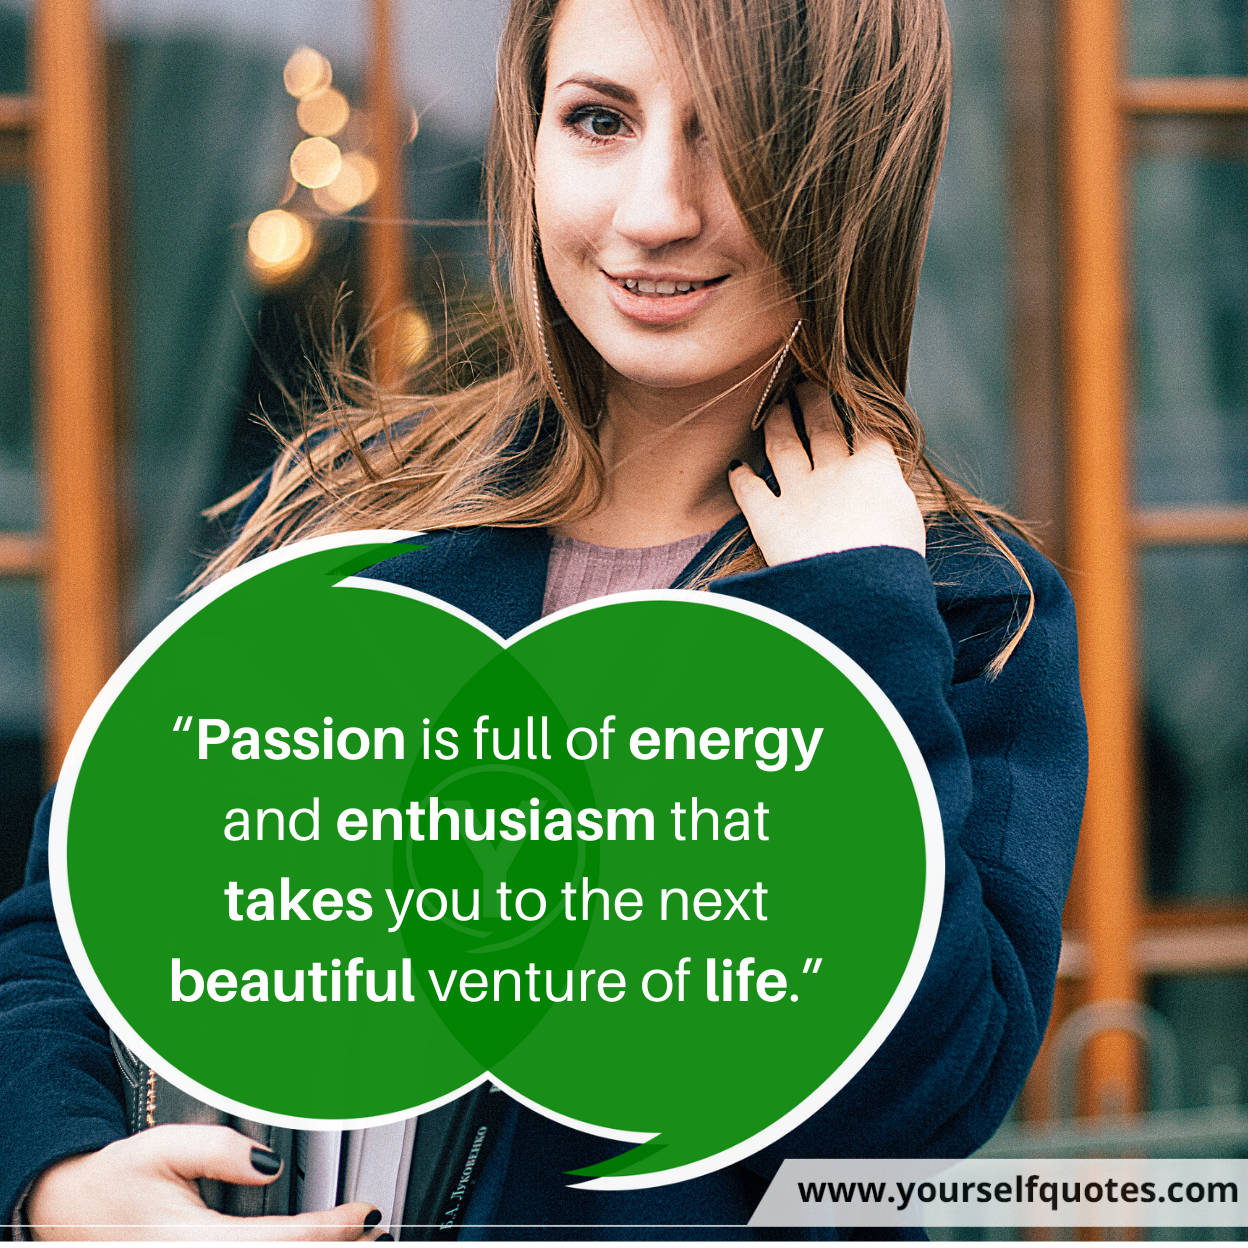 Quotes on Passion Thoughts Images